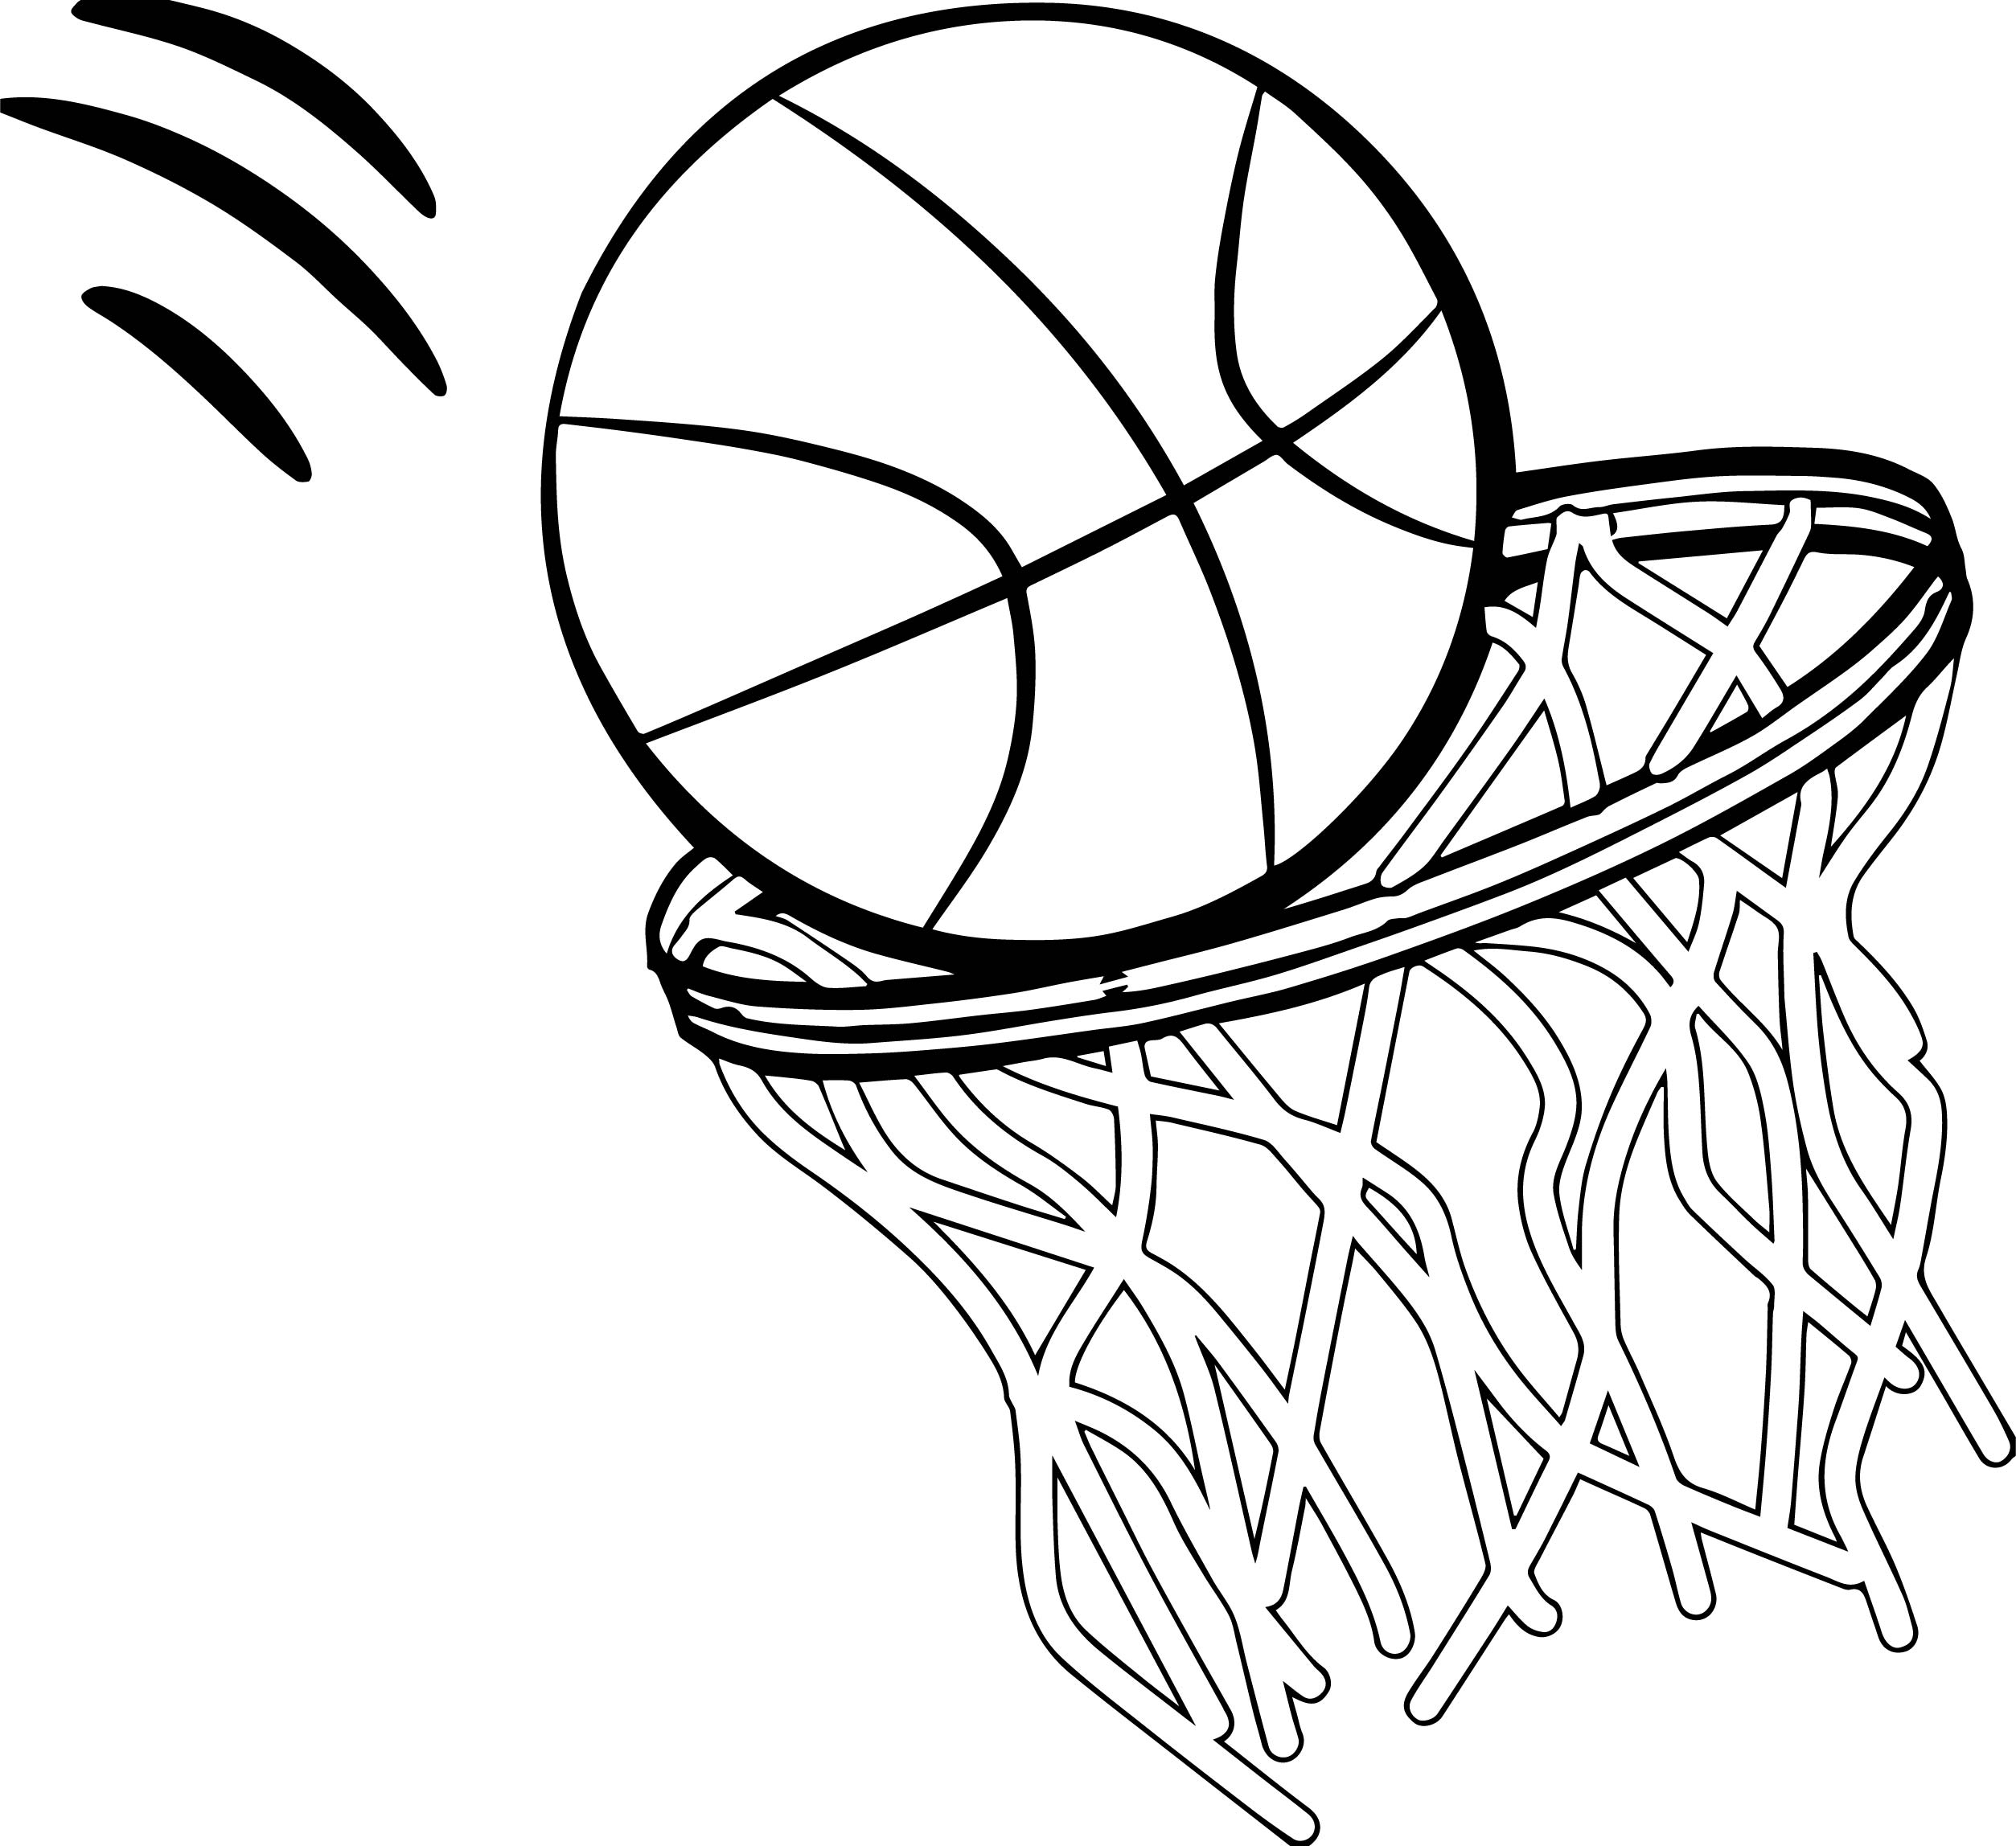 coloring pages of basketball basketball coloring page that are transformative powell pages of coloring basketball